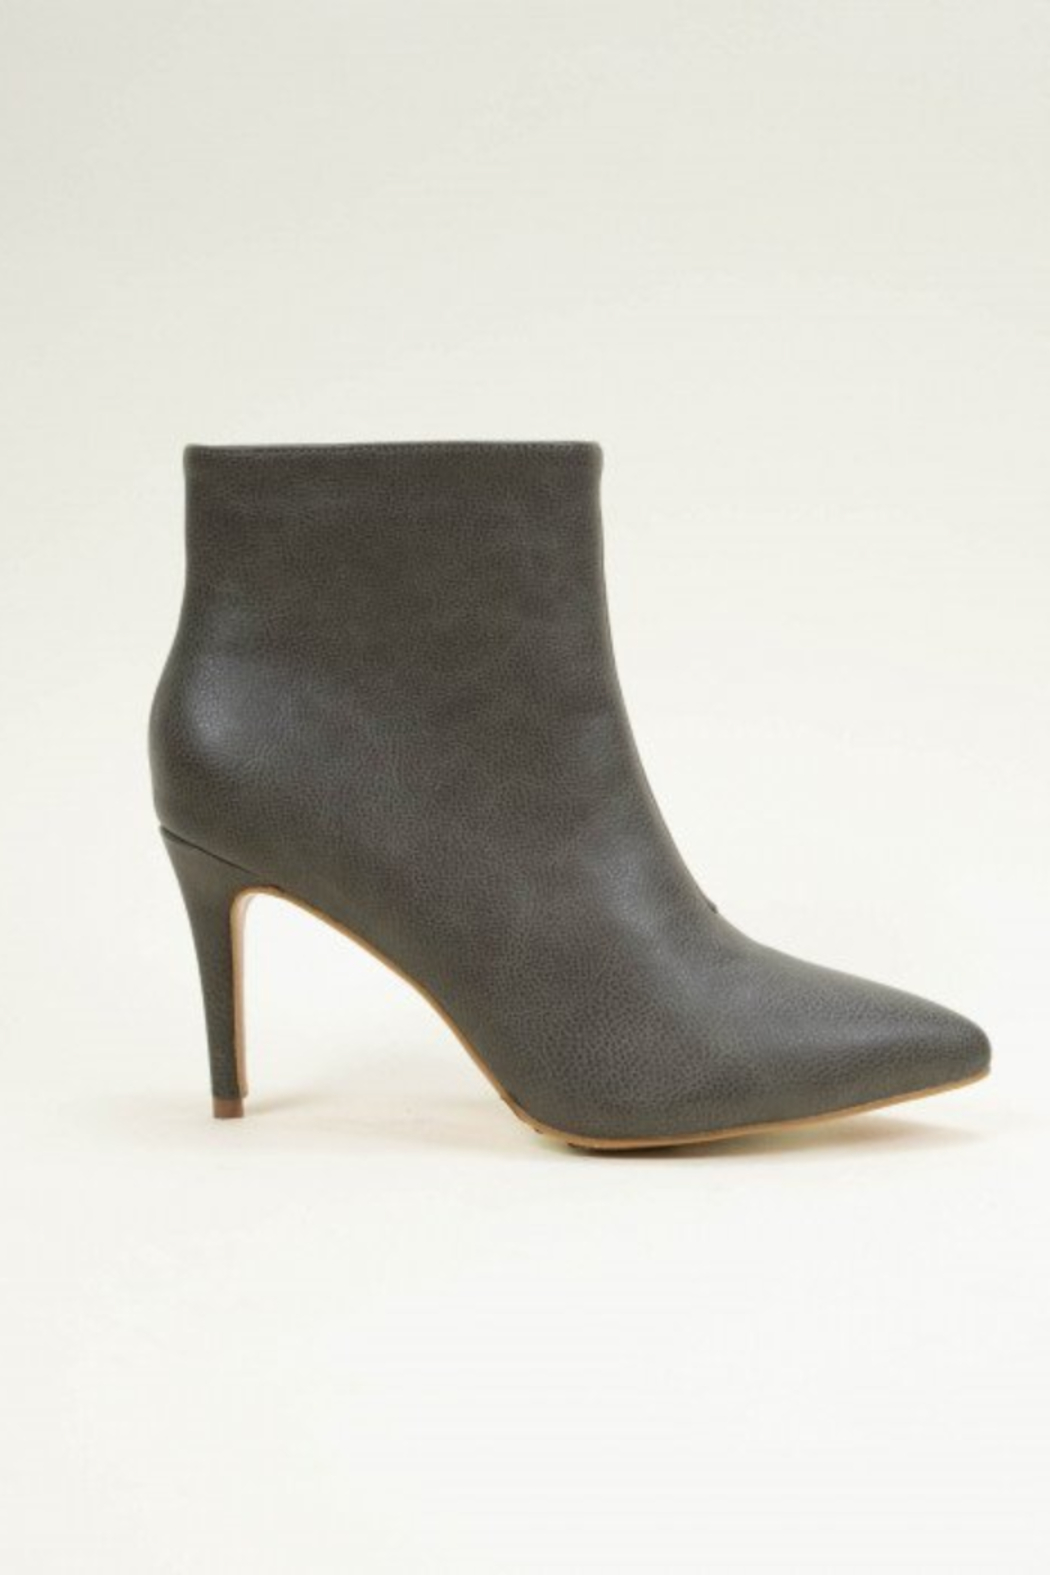 Ccocci - Collett - Black Bootie with Heel - Front Cropped Image